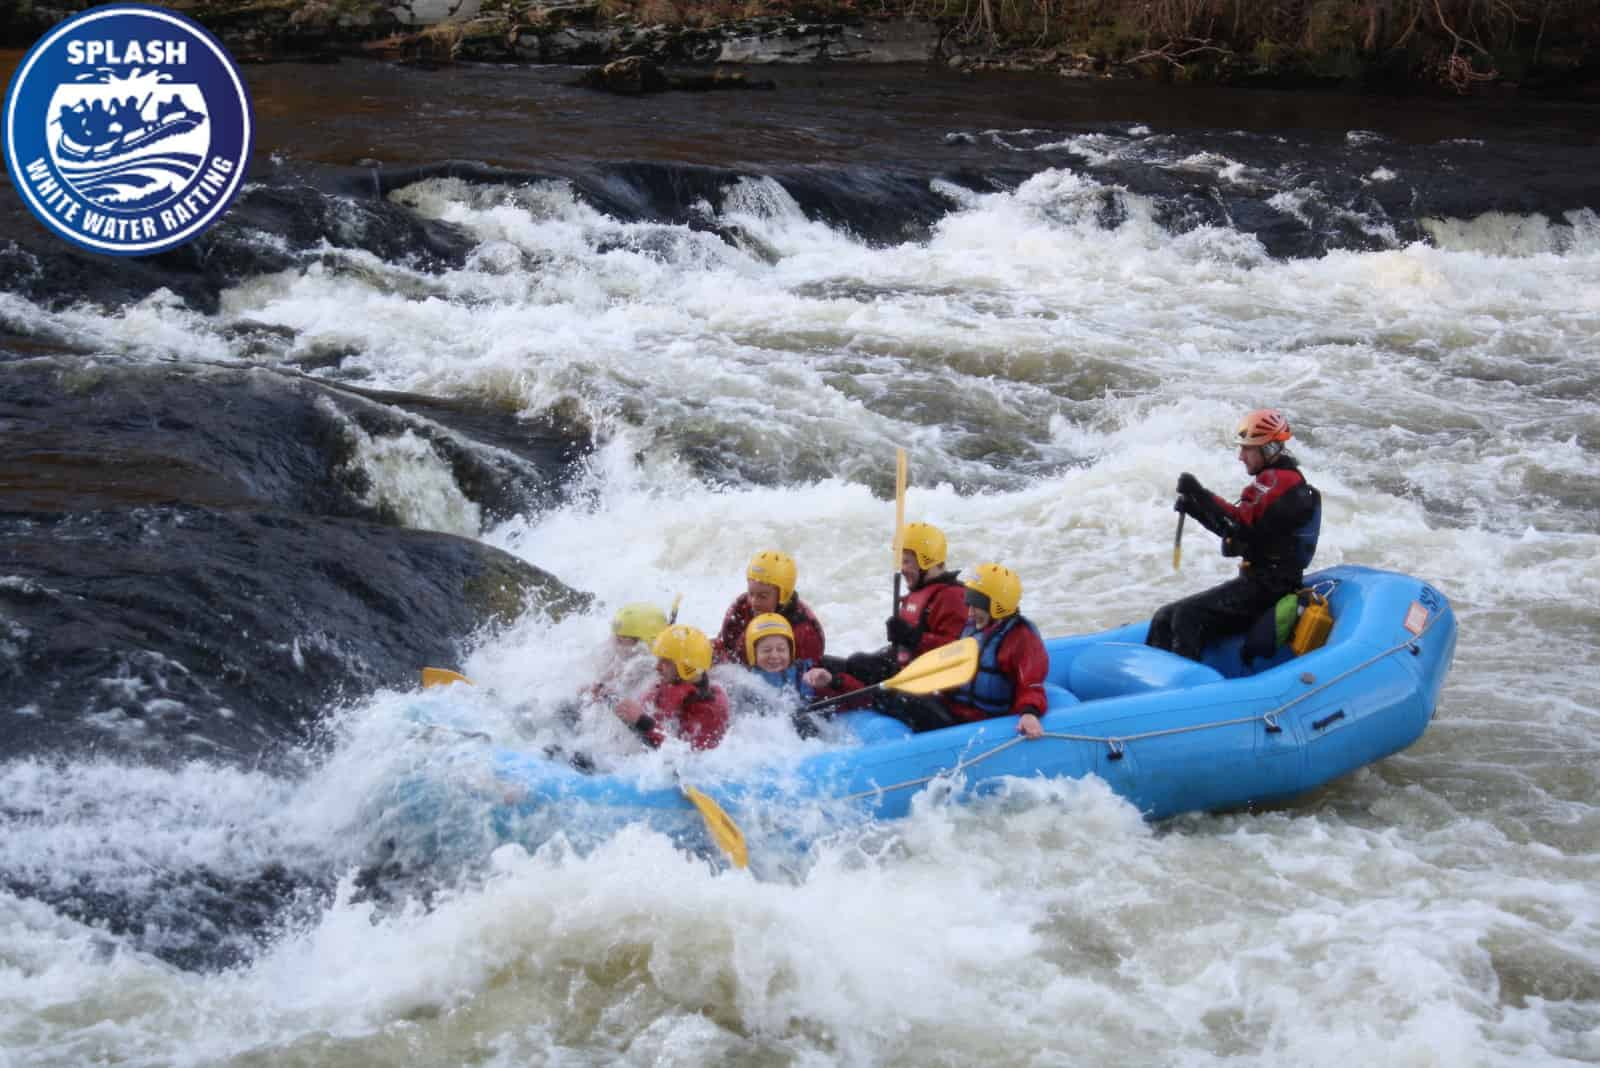 whitewater-rafting-splash-offer